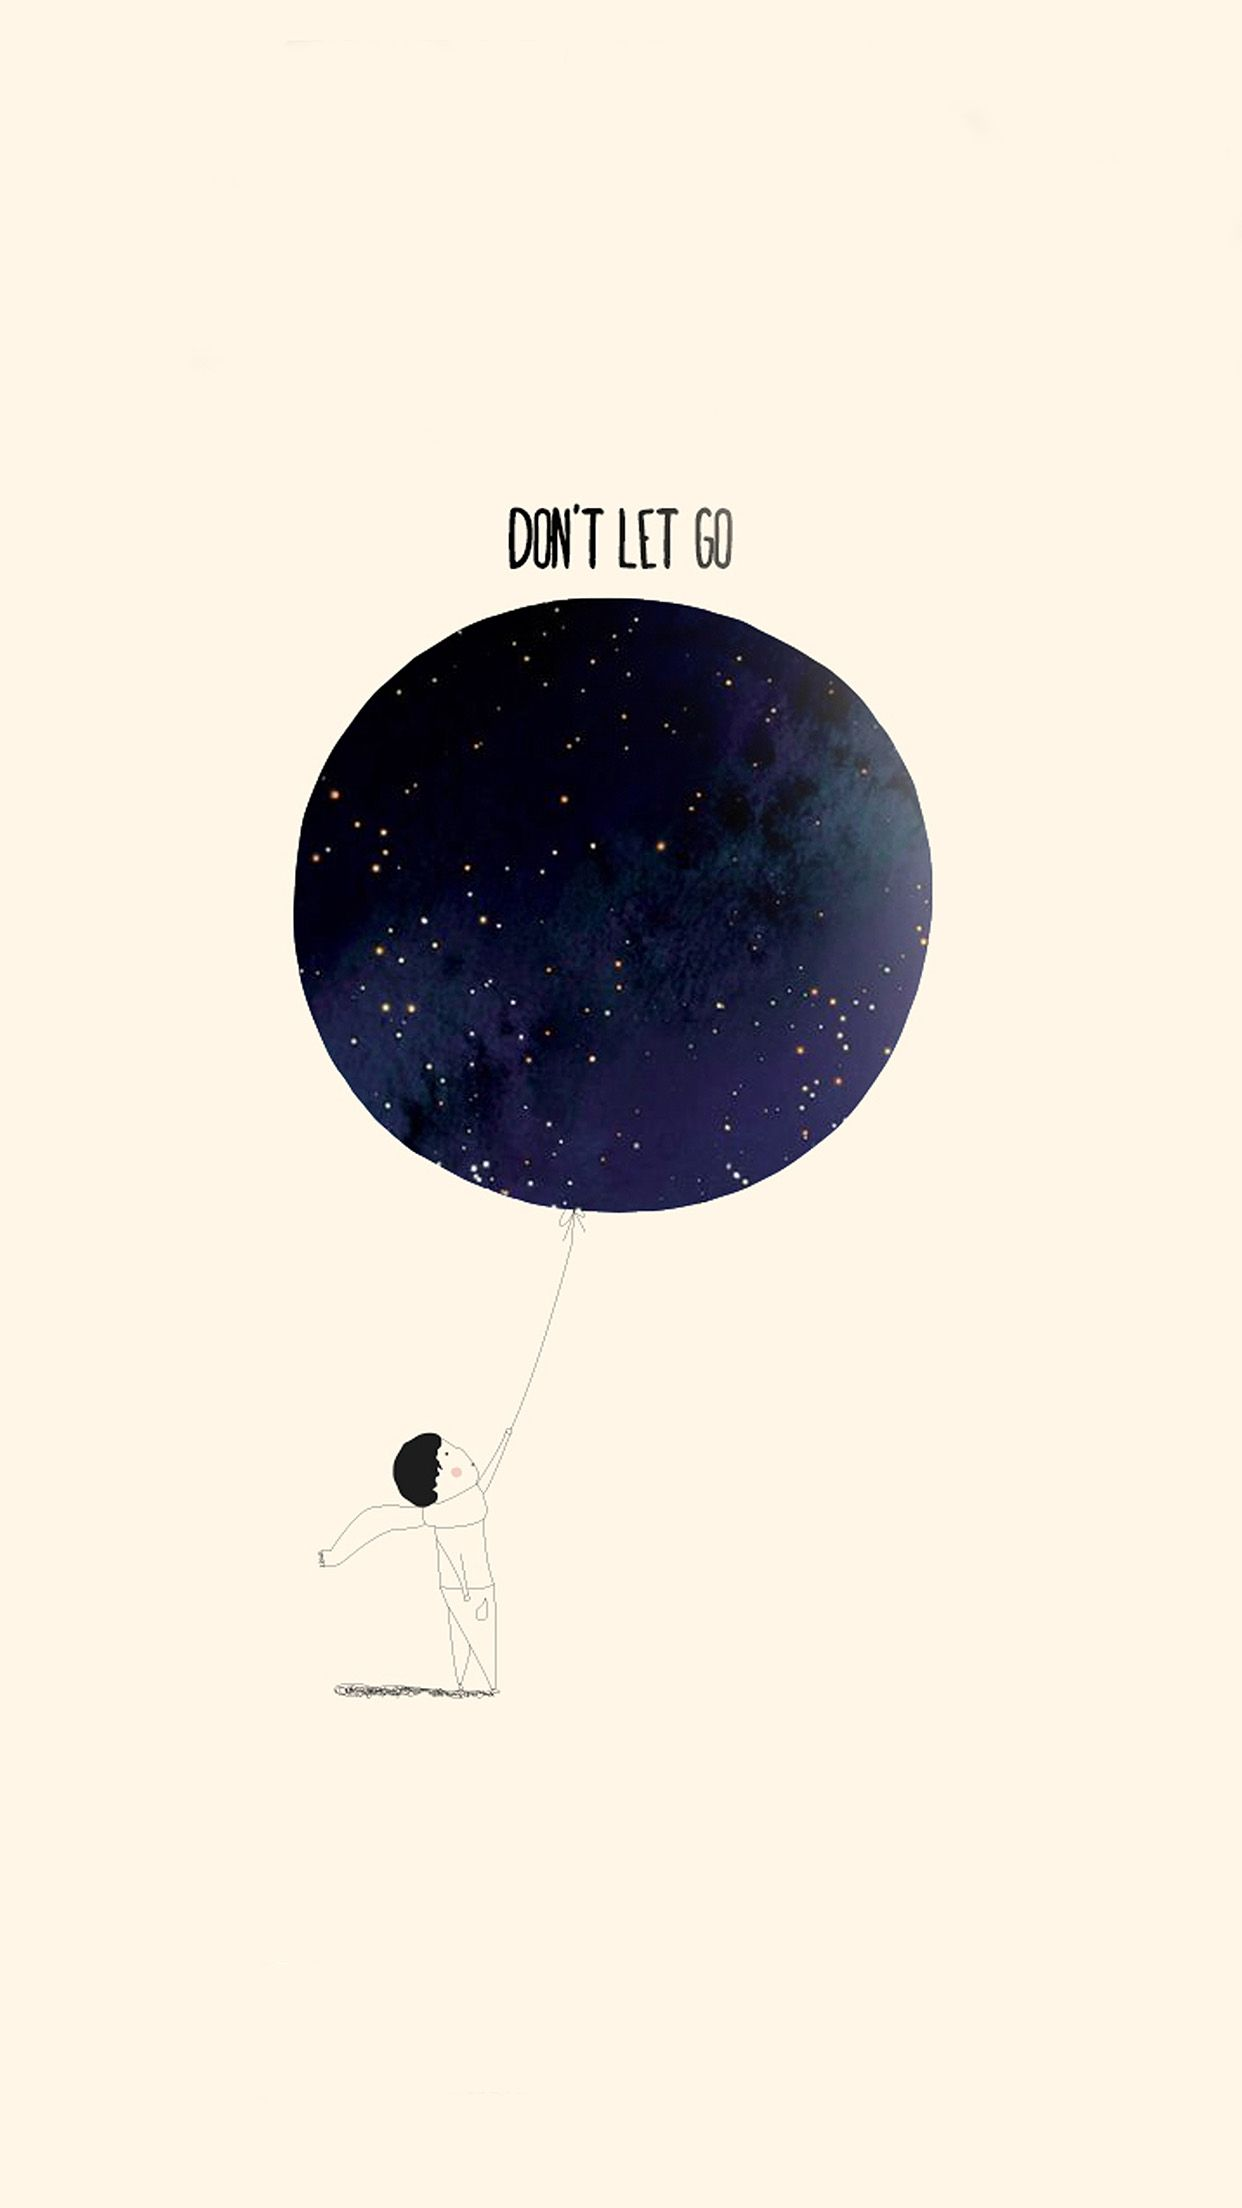 Iphone 5 wallpaper tumblr guys - Dont Let Go Illustration Minimal Art Iphone 6 Wallpaper